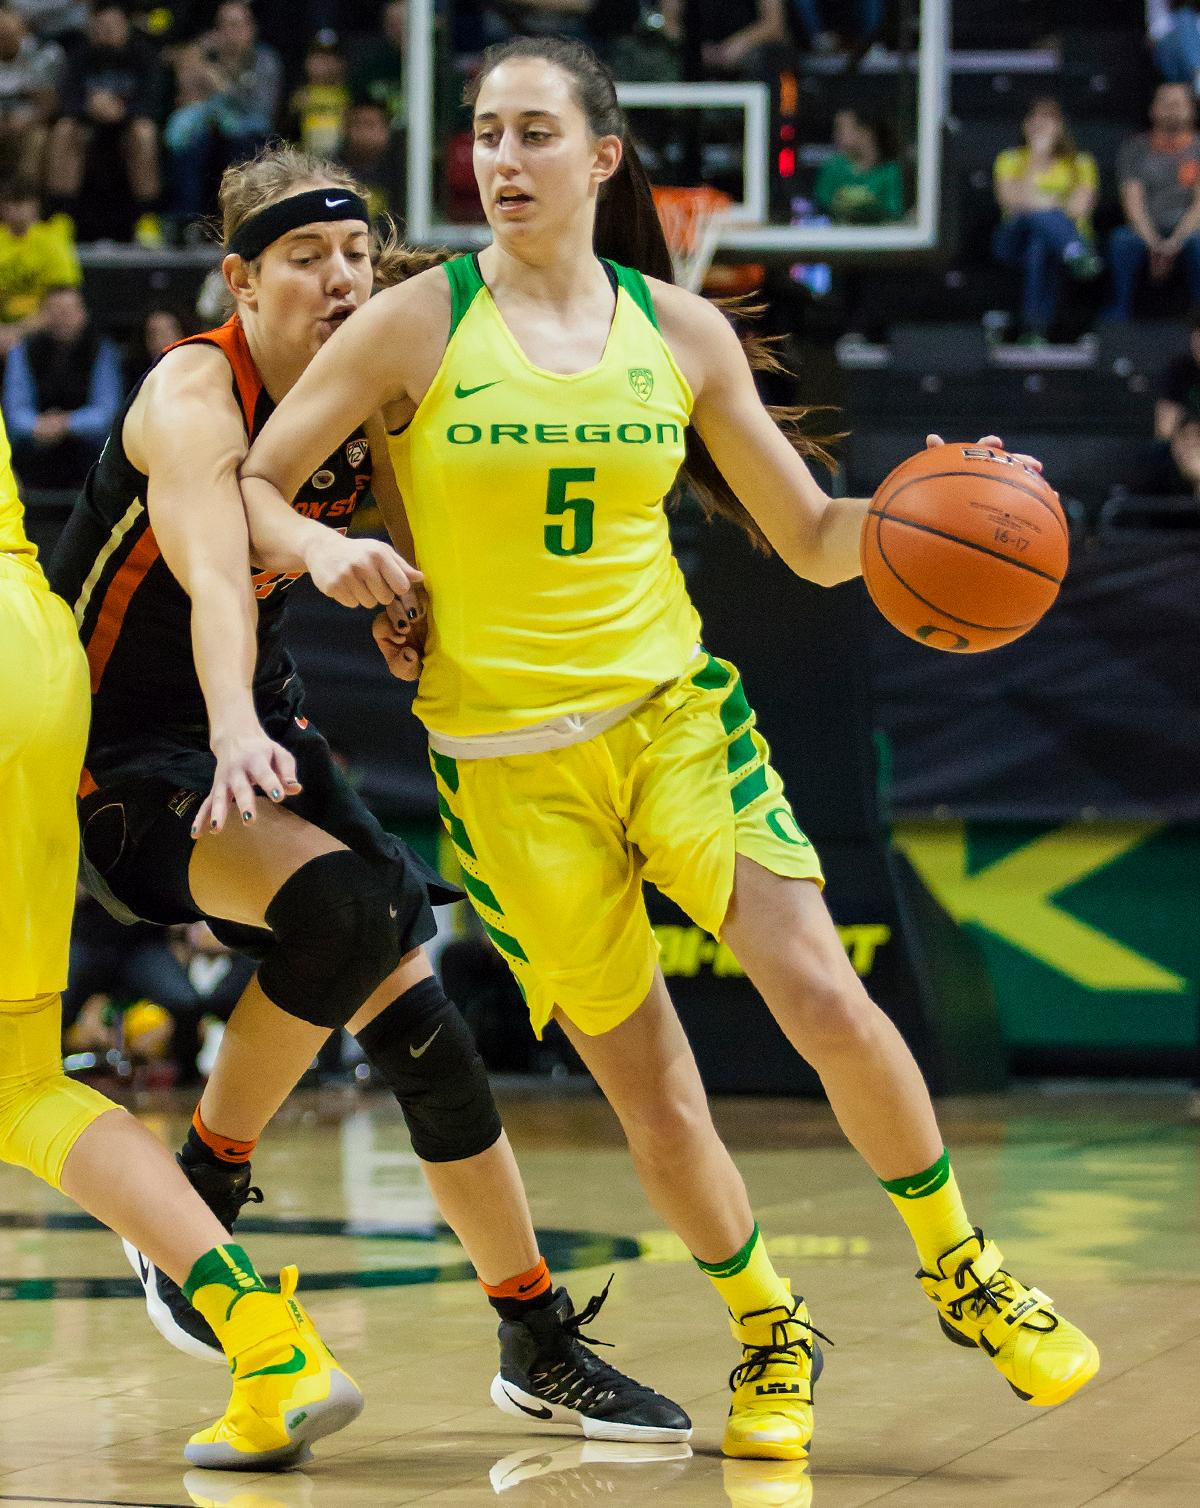 Oregon guard Maite Cazorla (#5) breaks free of Oregon State guard Sydney Wiese (#24). The Oregon Ducks lost 40 to 43 against the Oregon State Beavers after a tightly matched 4th quarter. Photo by Ben Lonergan, Oregon News Lab